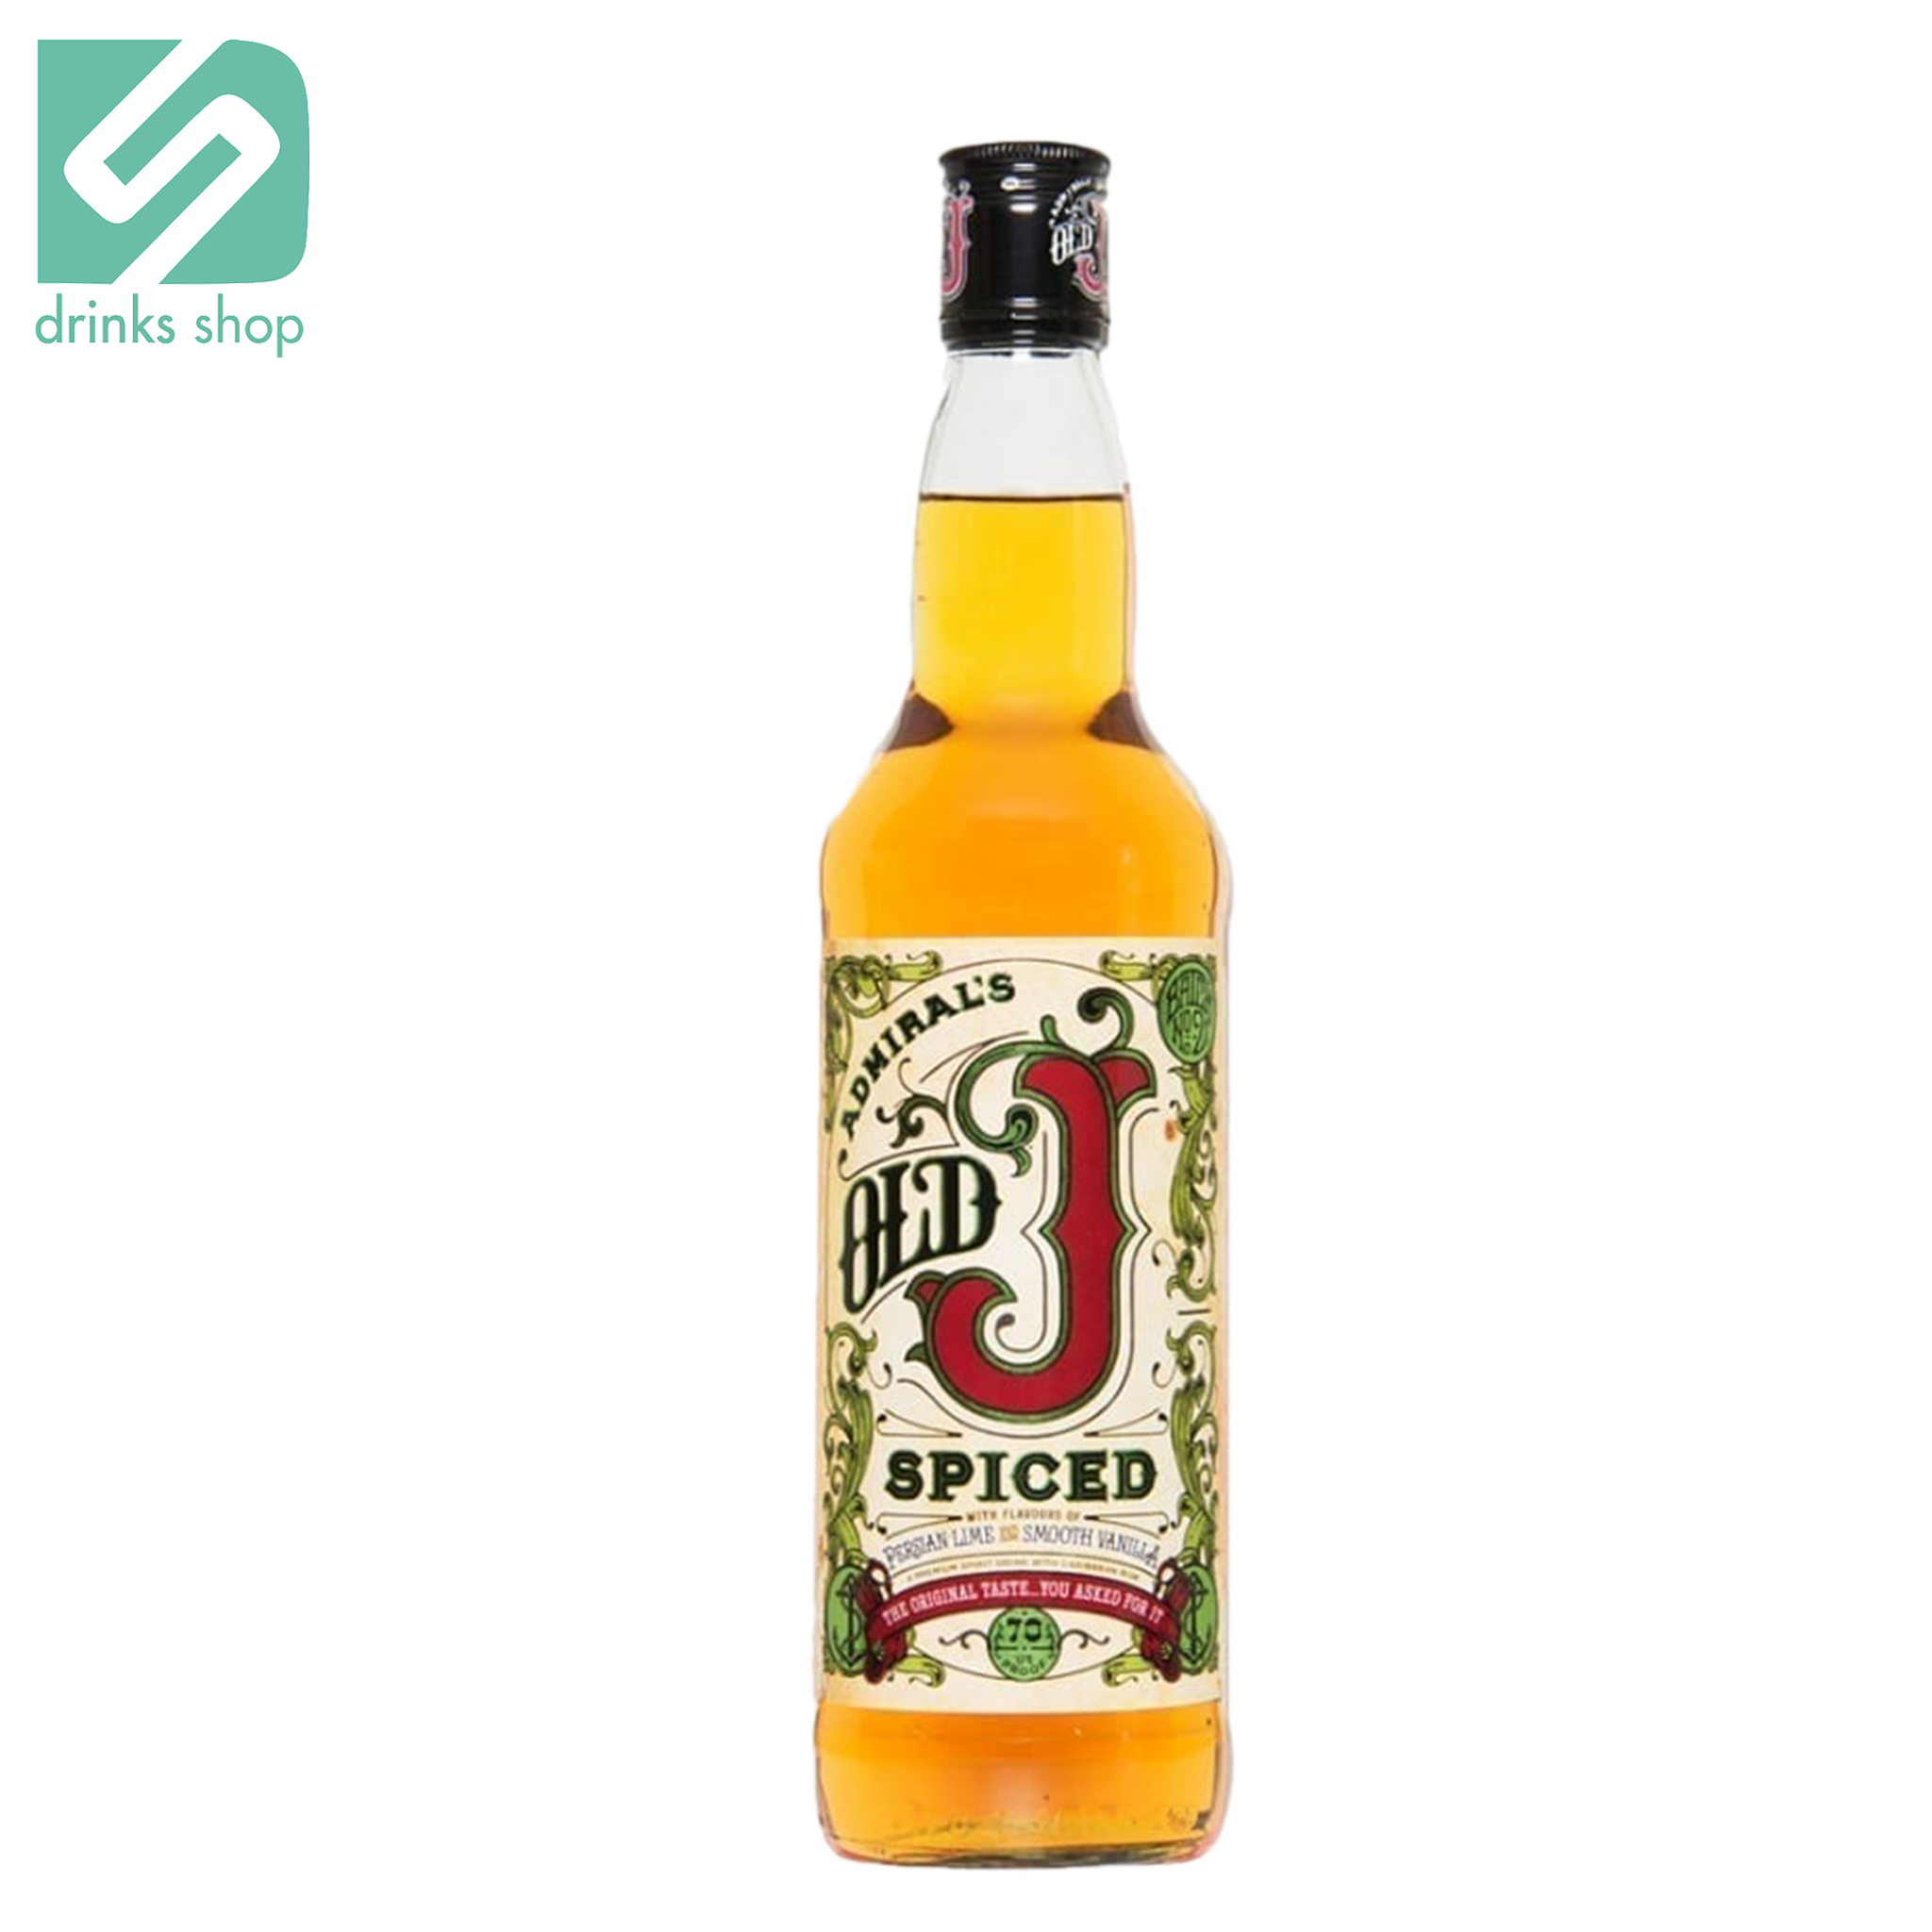 Admirals Old J Spiced 70cl, Rum - Image 1